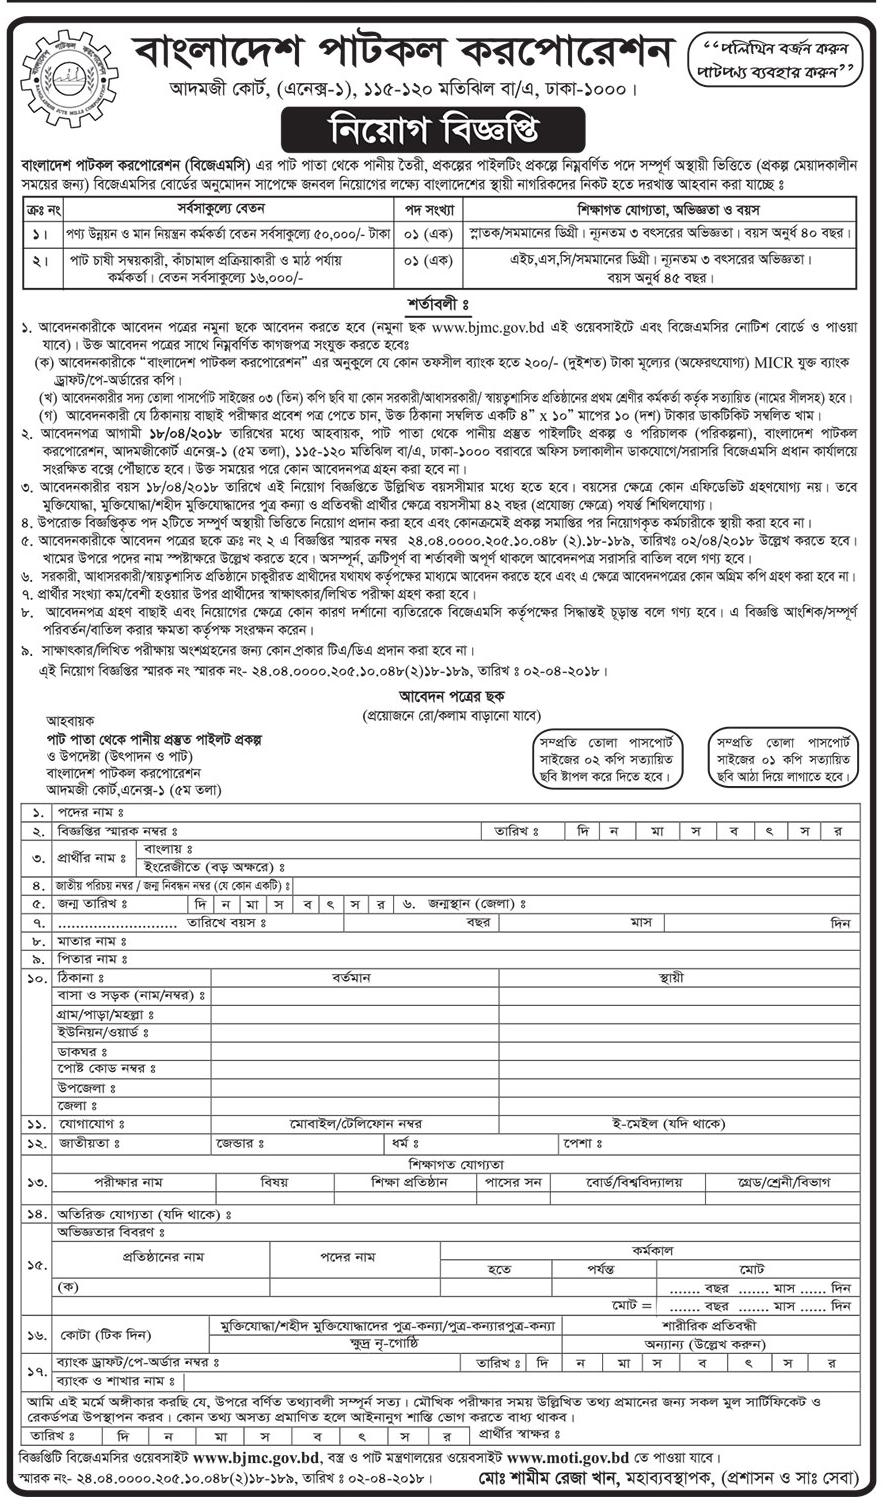 Bangladesh Jute Mills Corporation (BJMC) Job Circular 2018